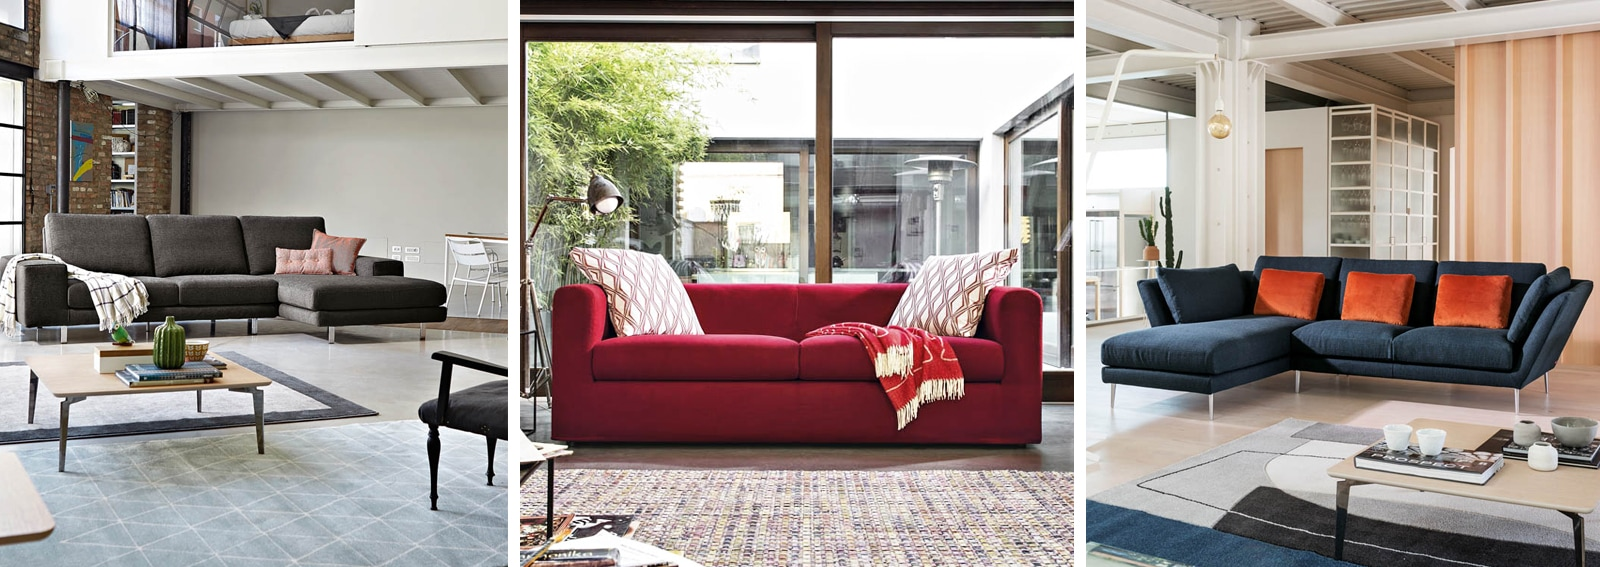 Poltrone Chaise Longue Design.Chaise Longue Poltrone Sofa Canape Poltrone Et Sofa Elegant